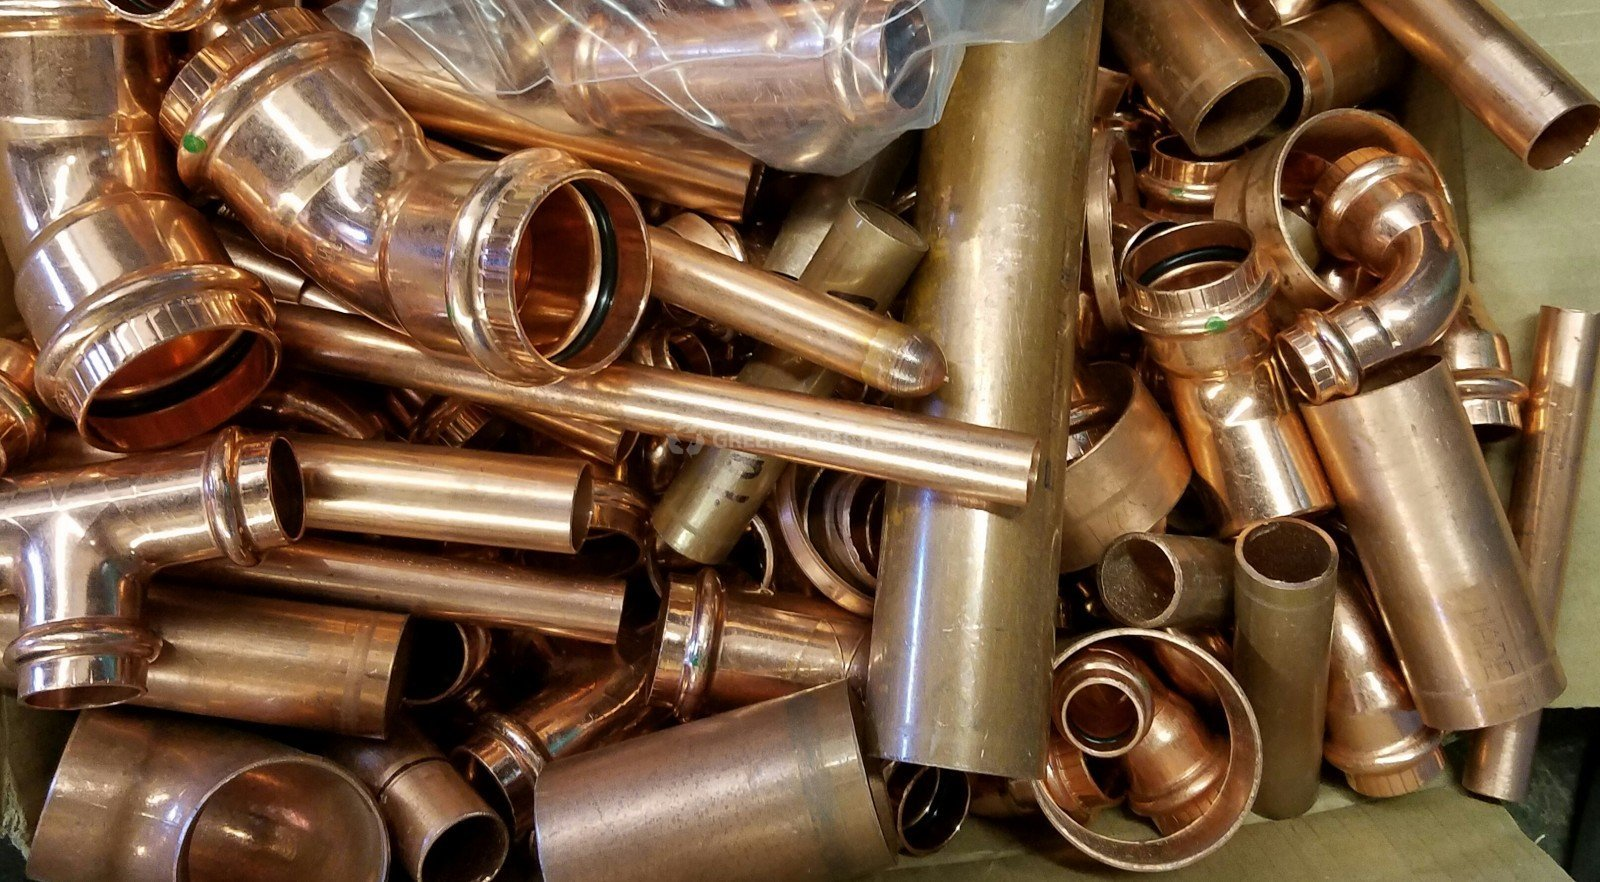 Scrap metal prices in la dispose metals at greener recycling for Copper pipe cost